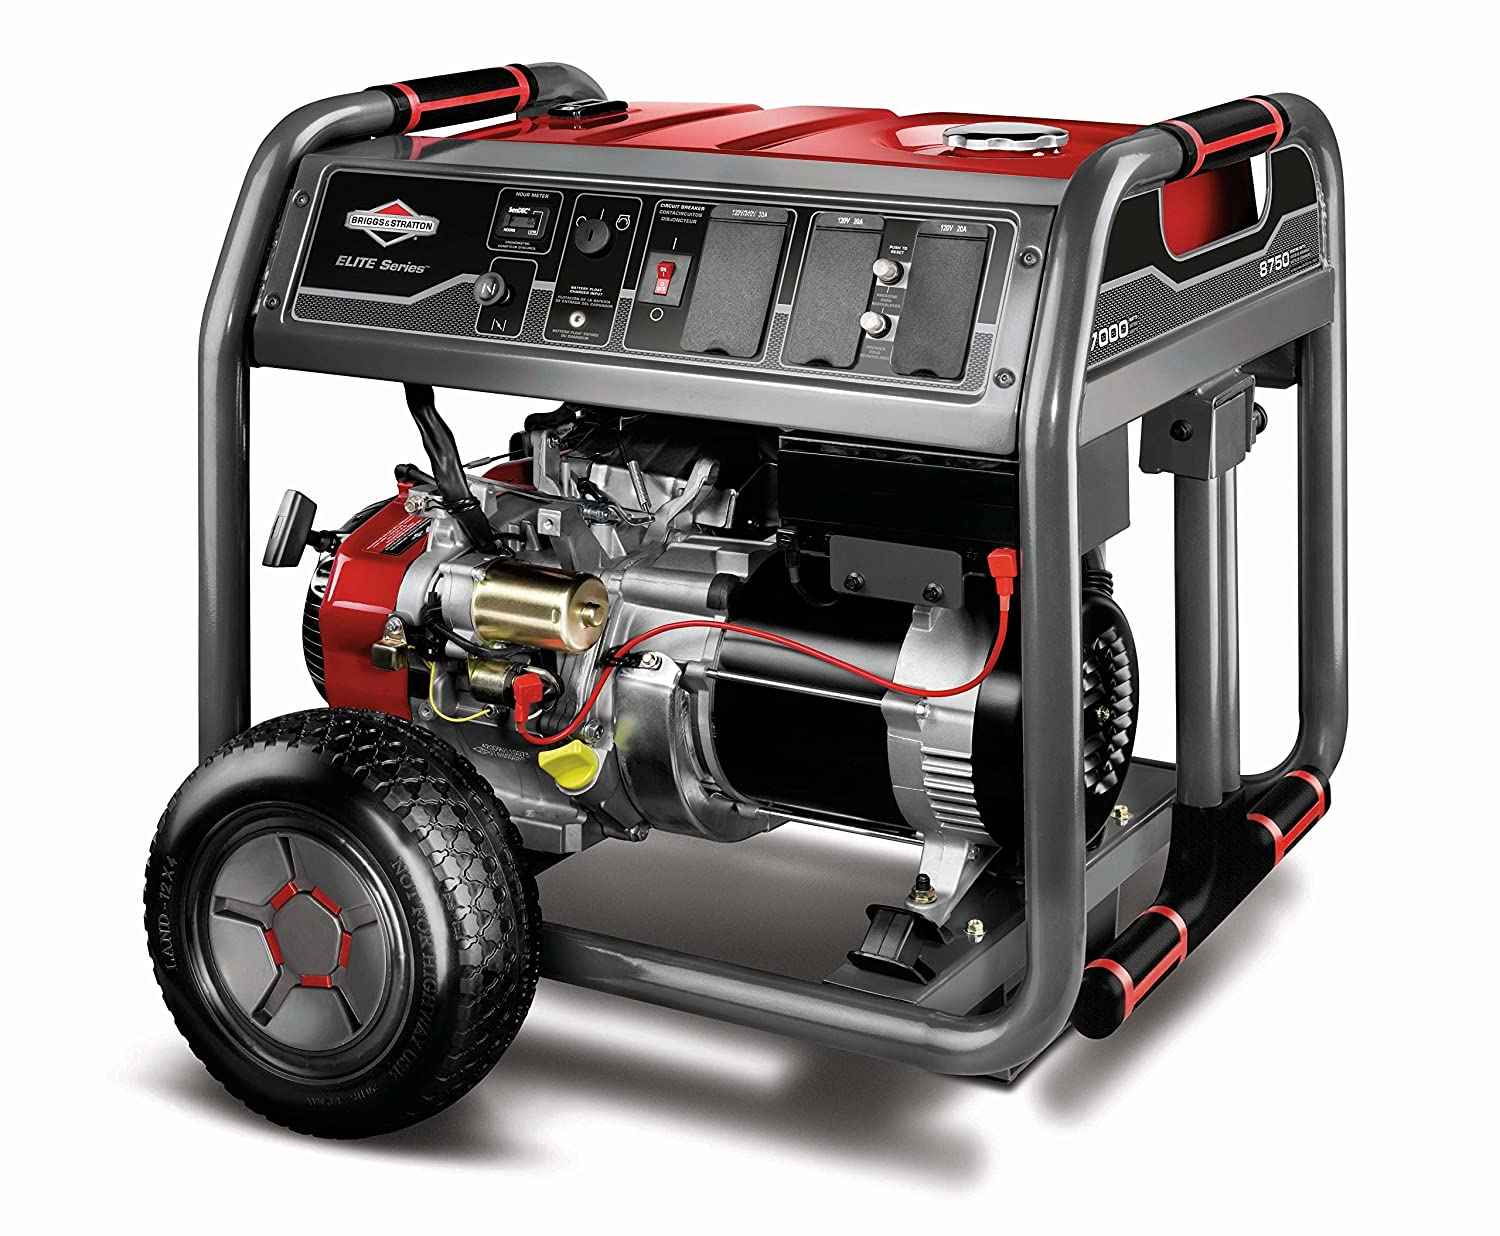 Amazon.com: Briggs & Stratton 30663, 7000 Running Watts/8750 ...